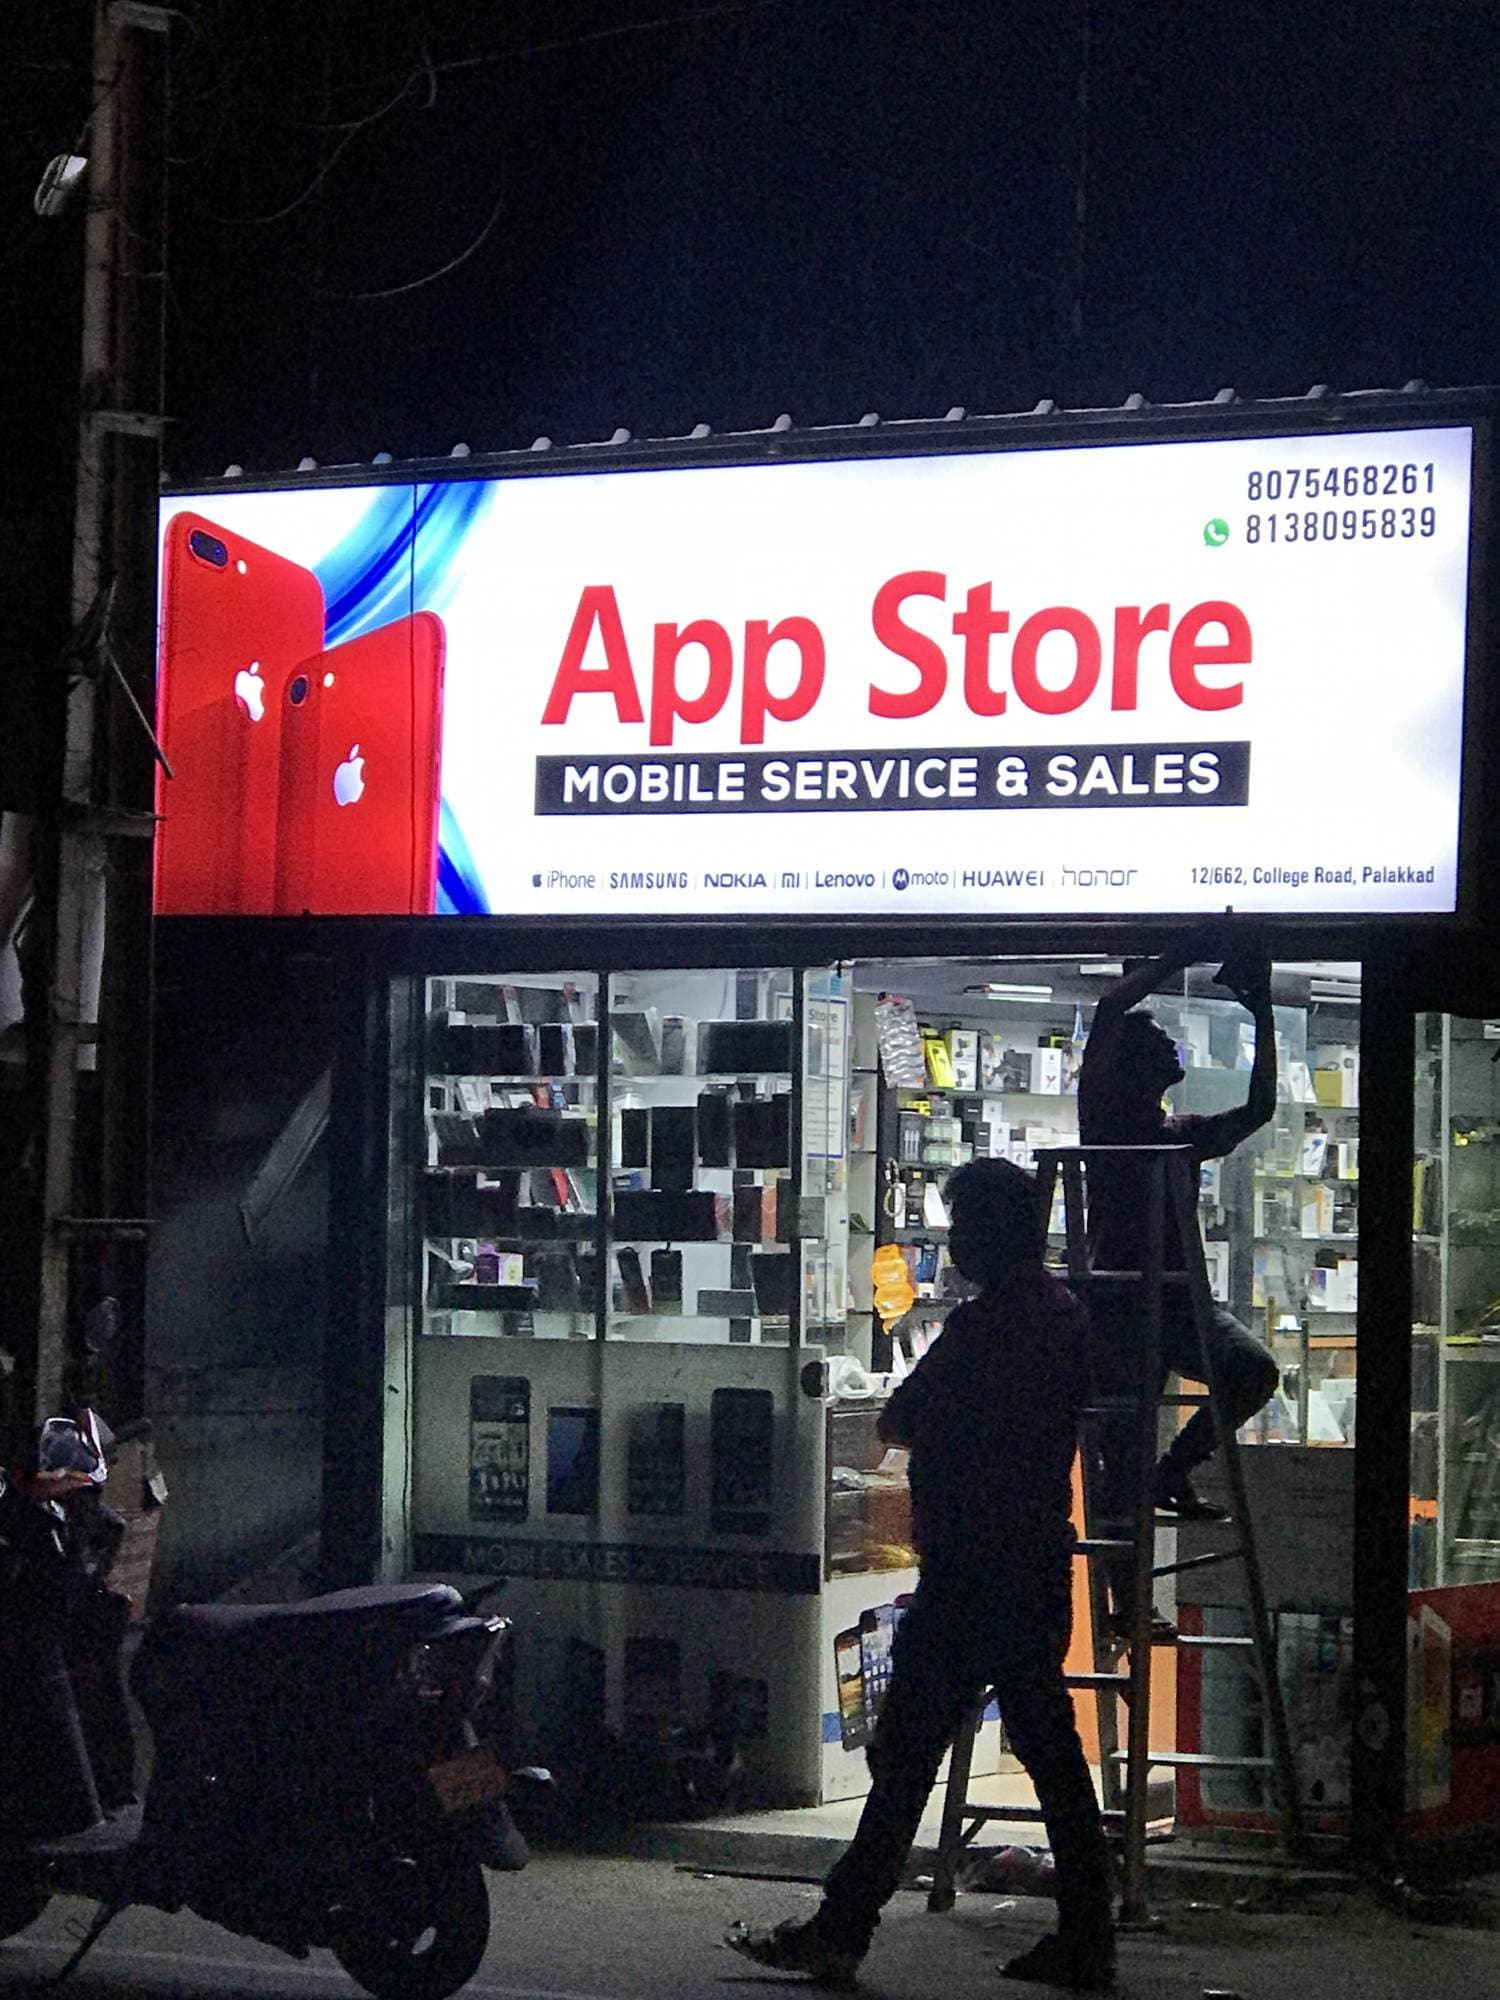 Top Oppo Mobile Phone Dealers in Palakkad Fort - Best Oppo